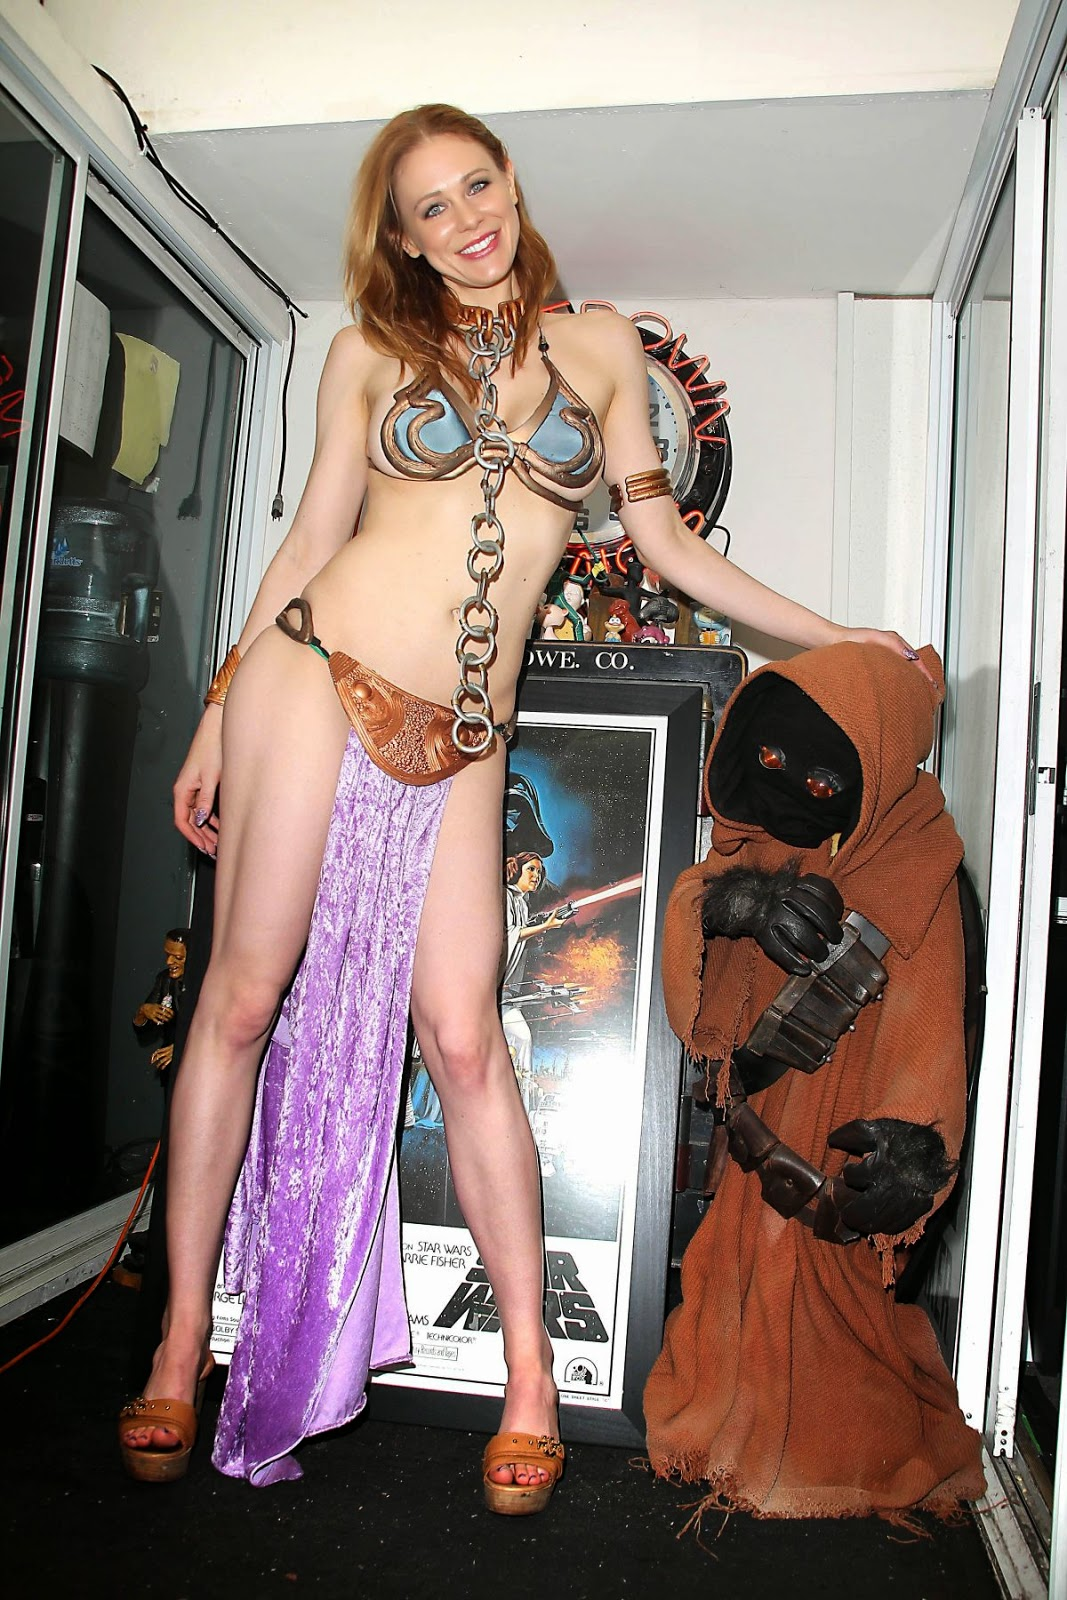 Arriany calleste hot leia cosplay striptease - 2 1